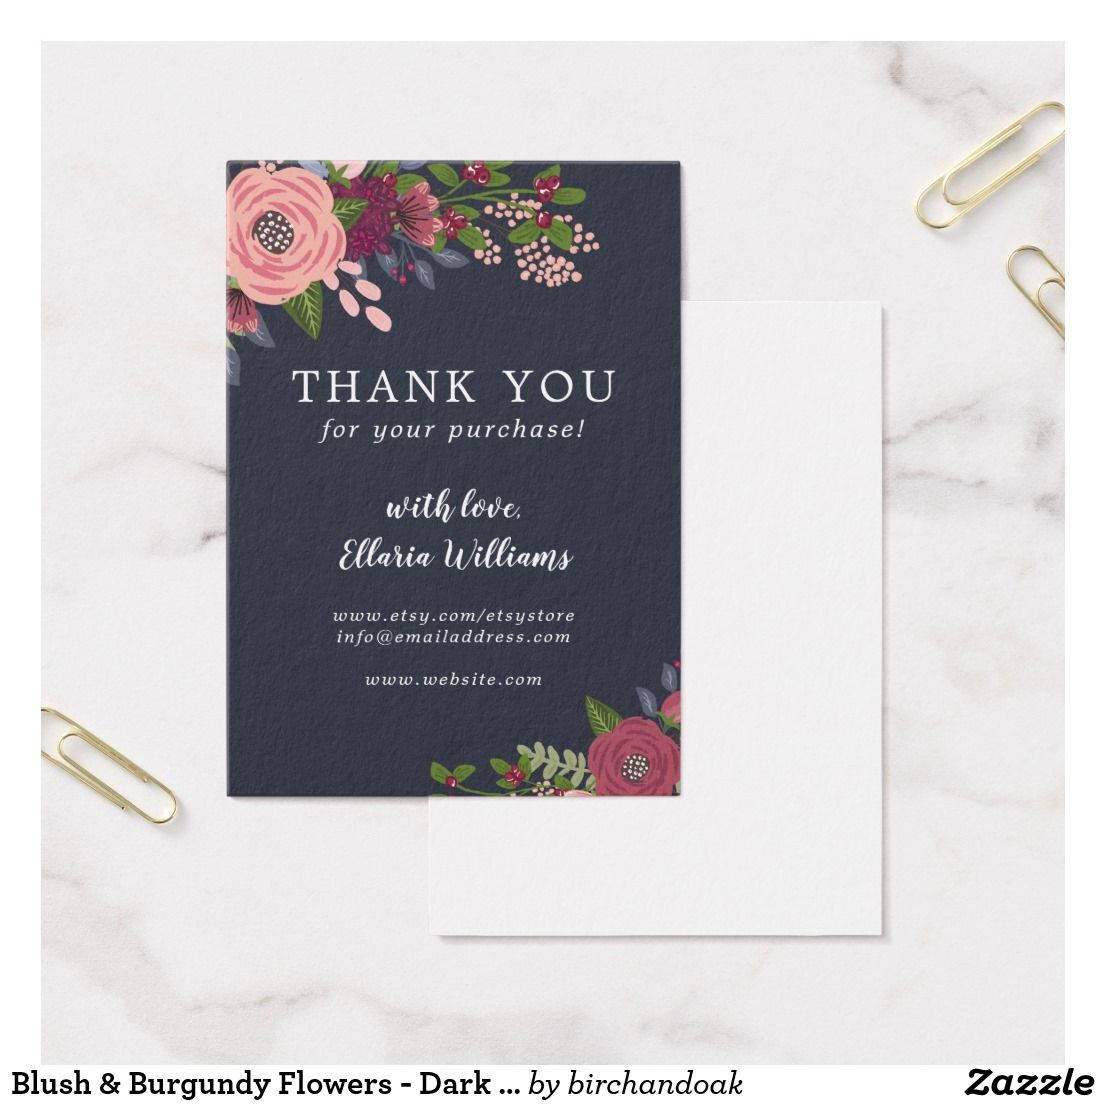 Blush & Burgundy Flowers - Dark Blue - Thank You Business Card ...